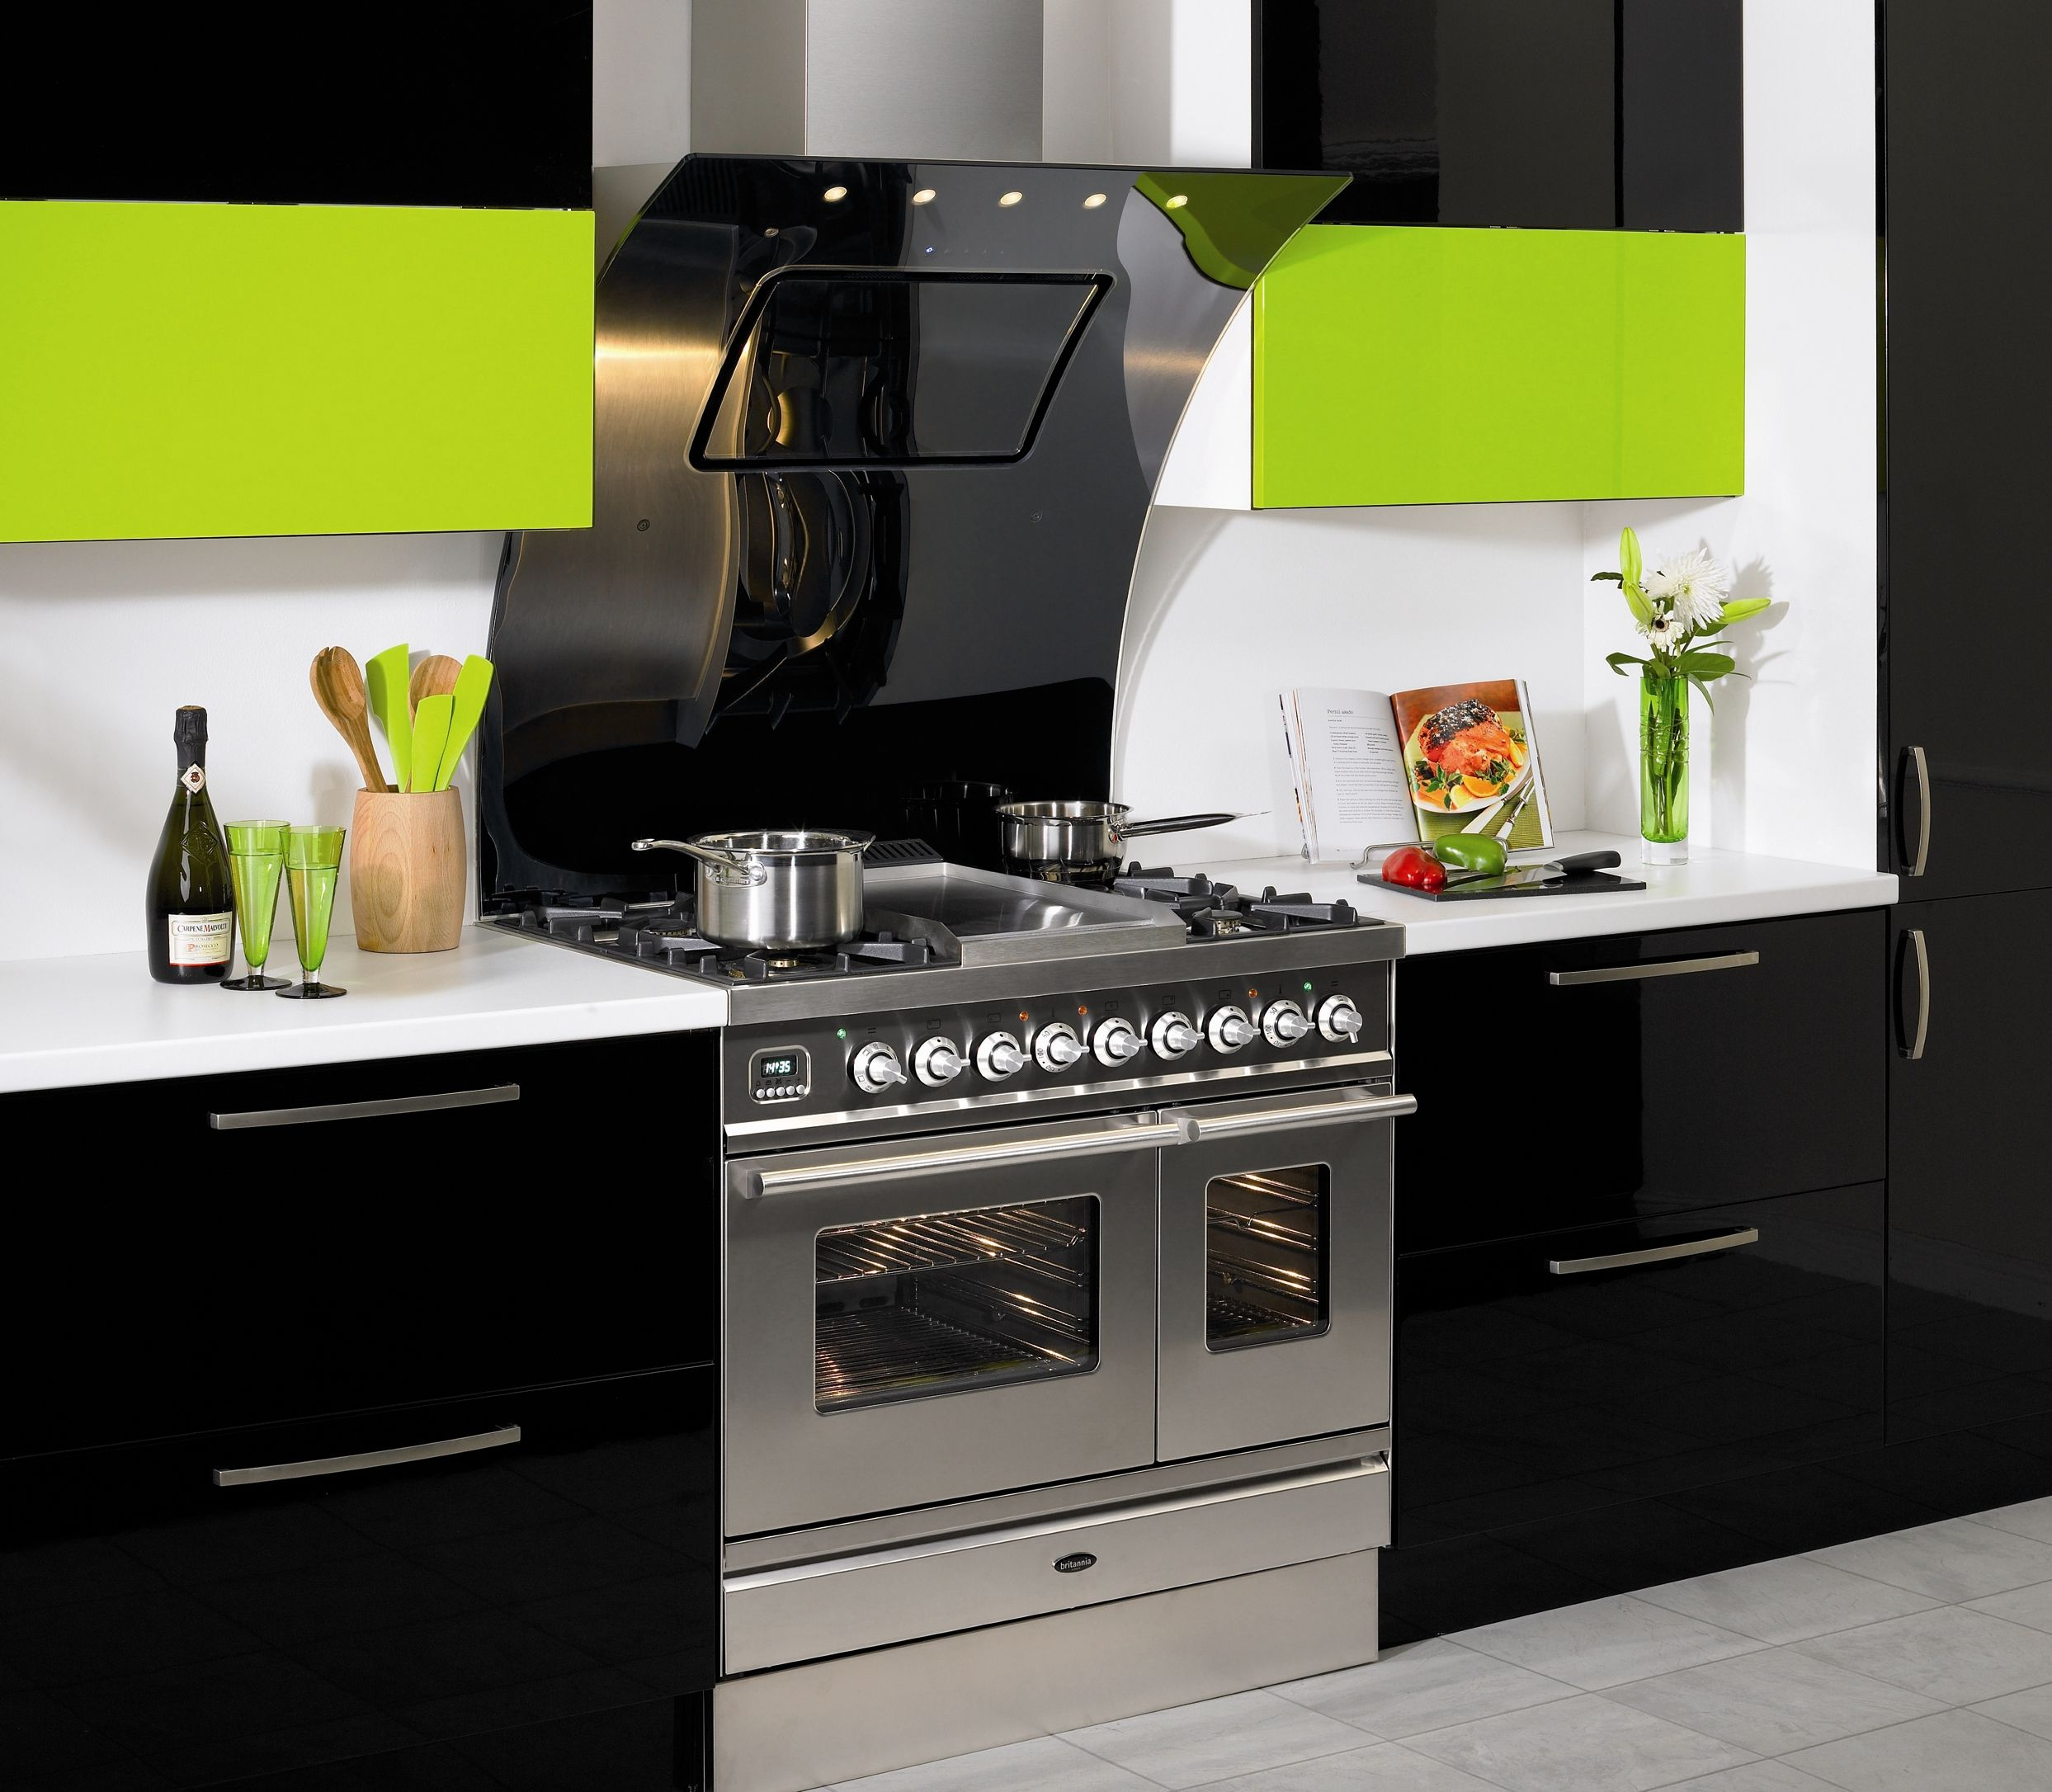 Modern Kitchen Hoods fabulous latest trends in kitchen design with contemporary built